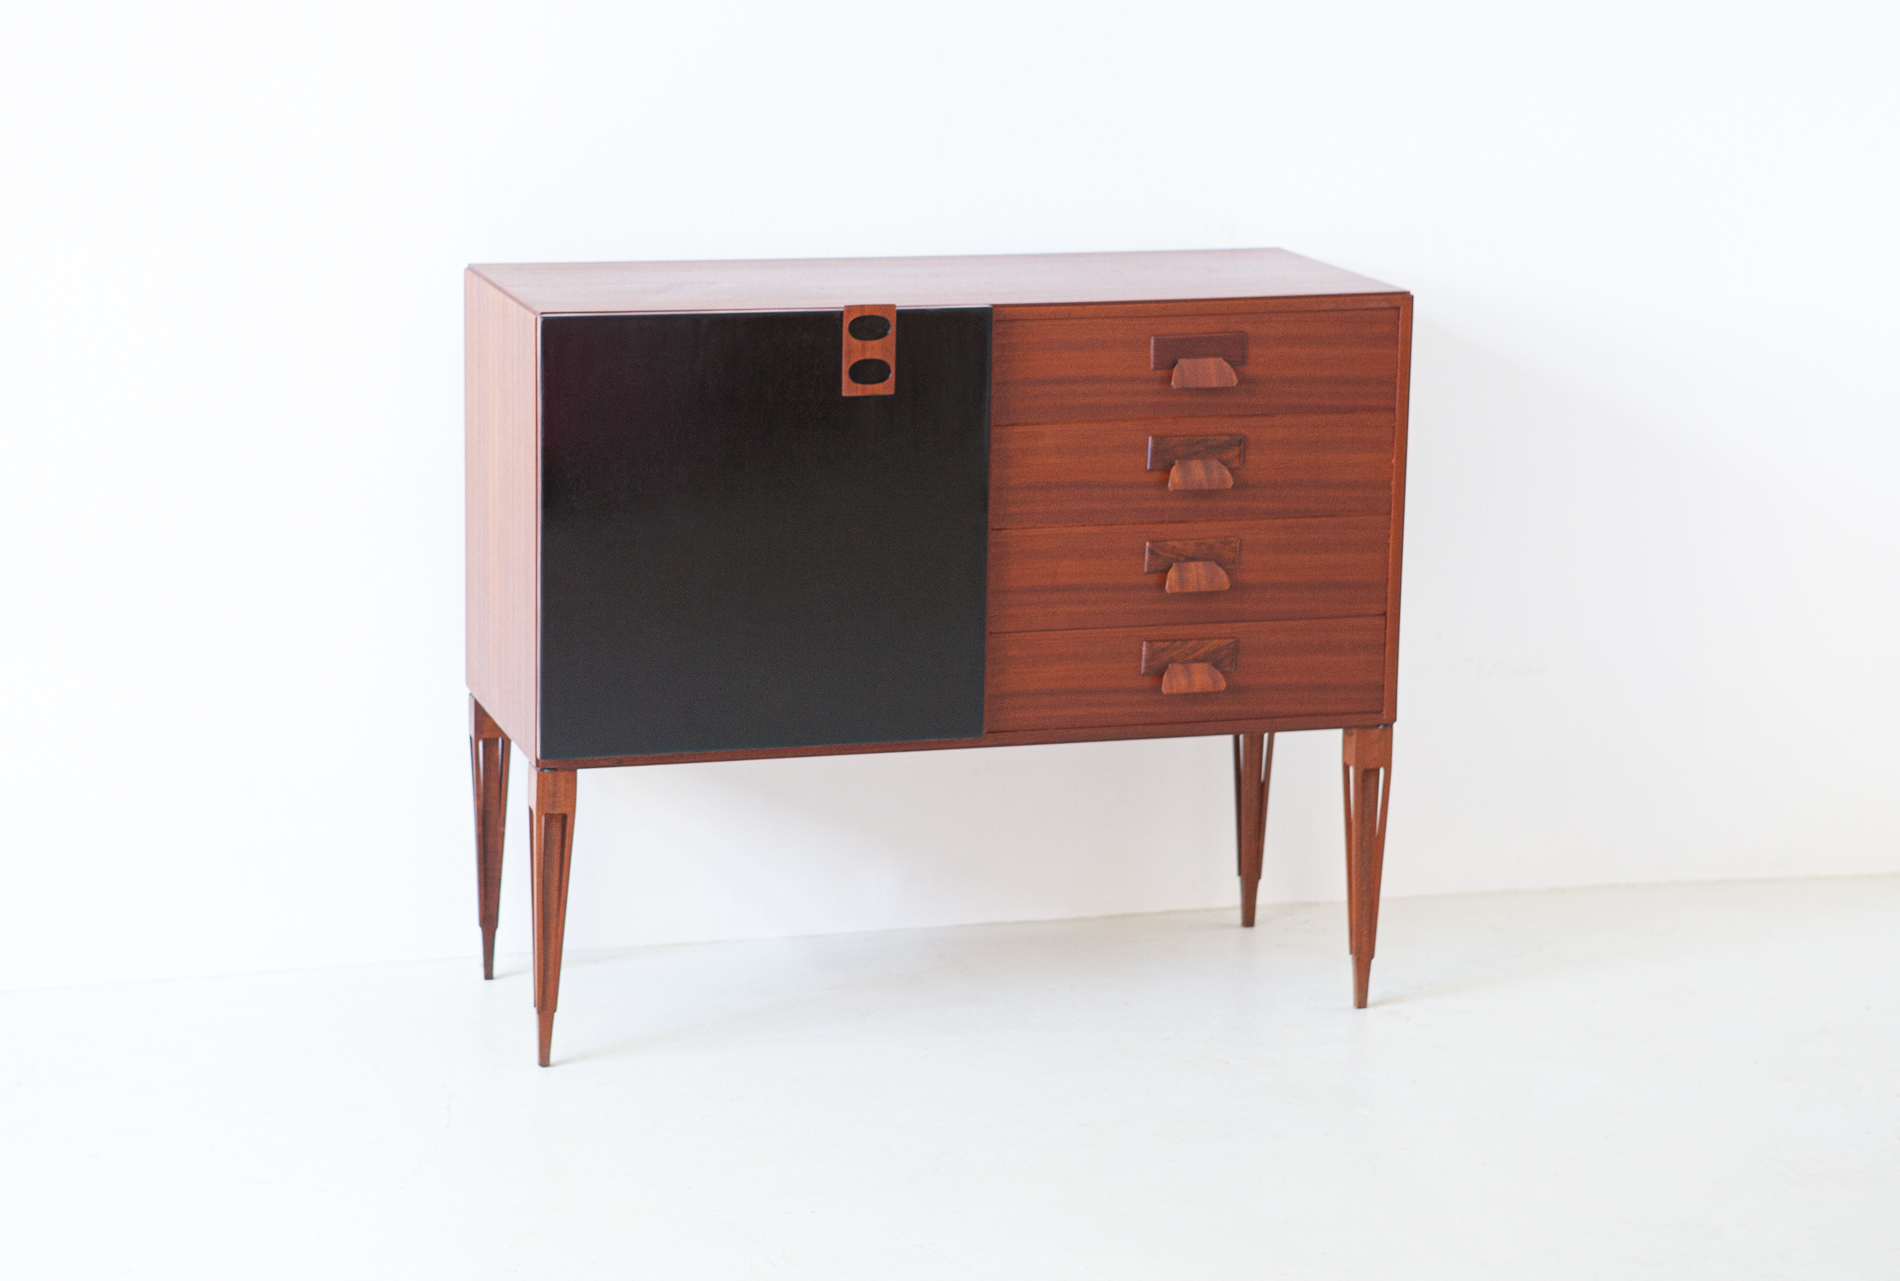 1950s-italian-mahogany-sideboard-with-drawers-by-fratelli-proserpio-4-st121